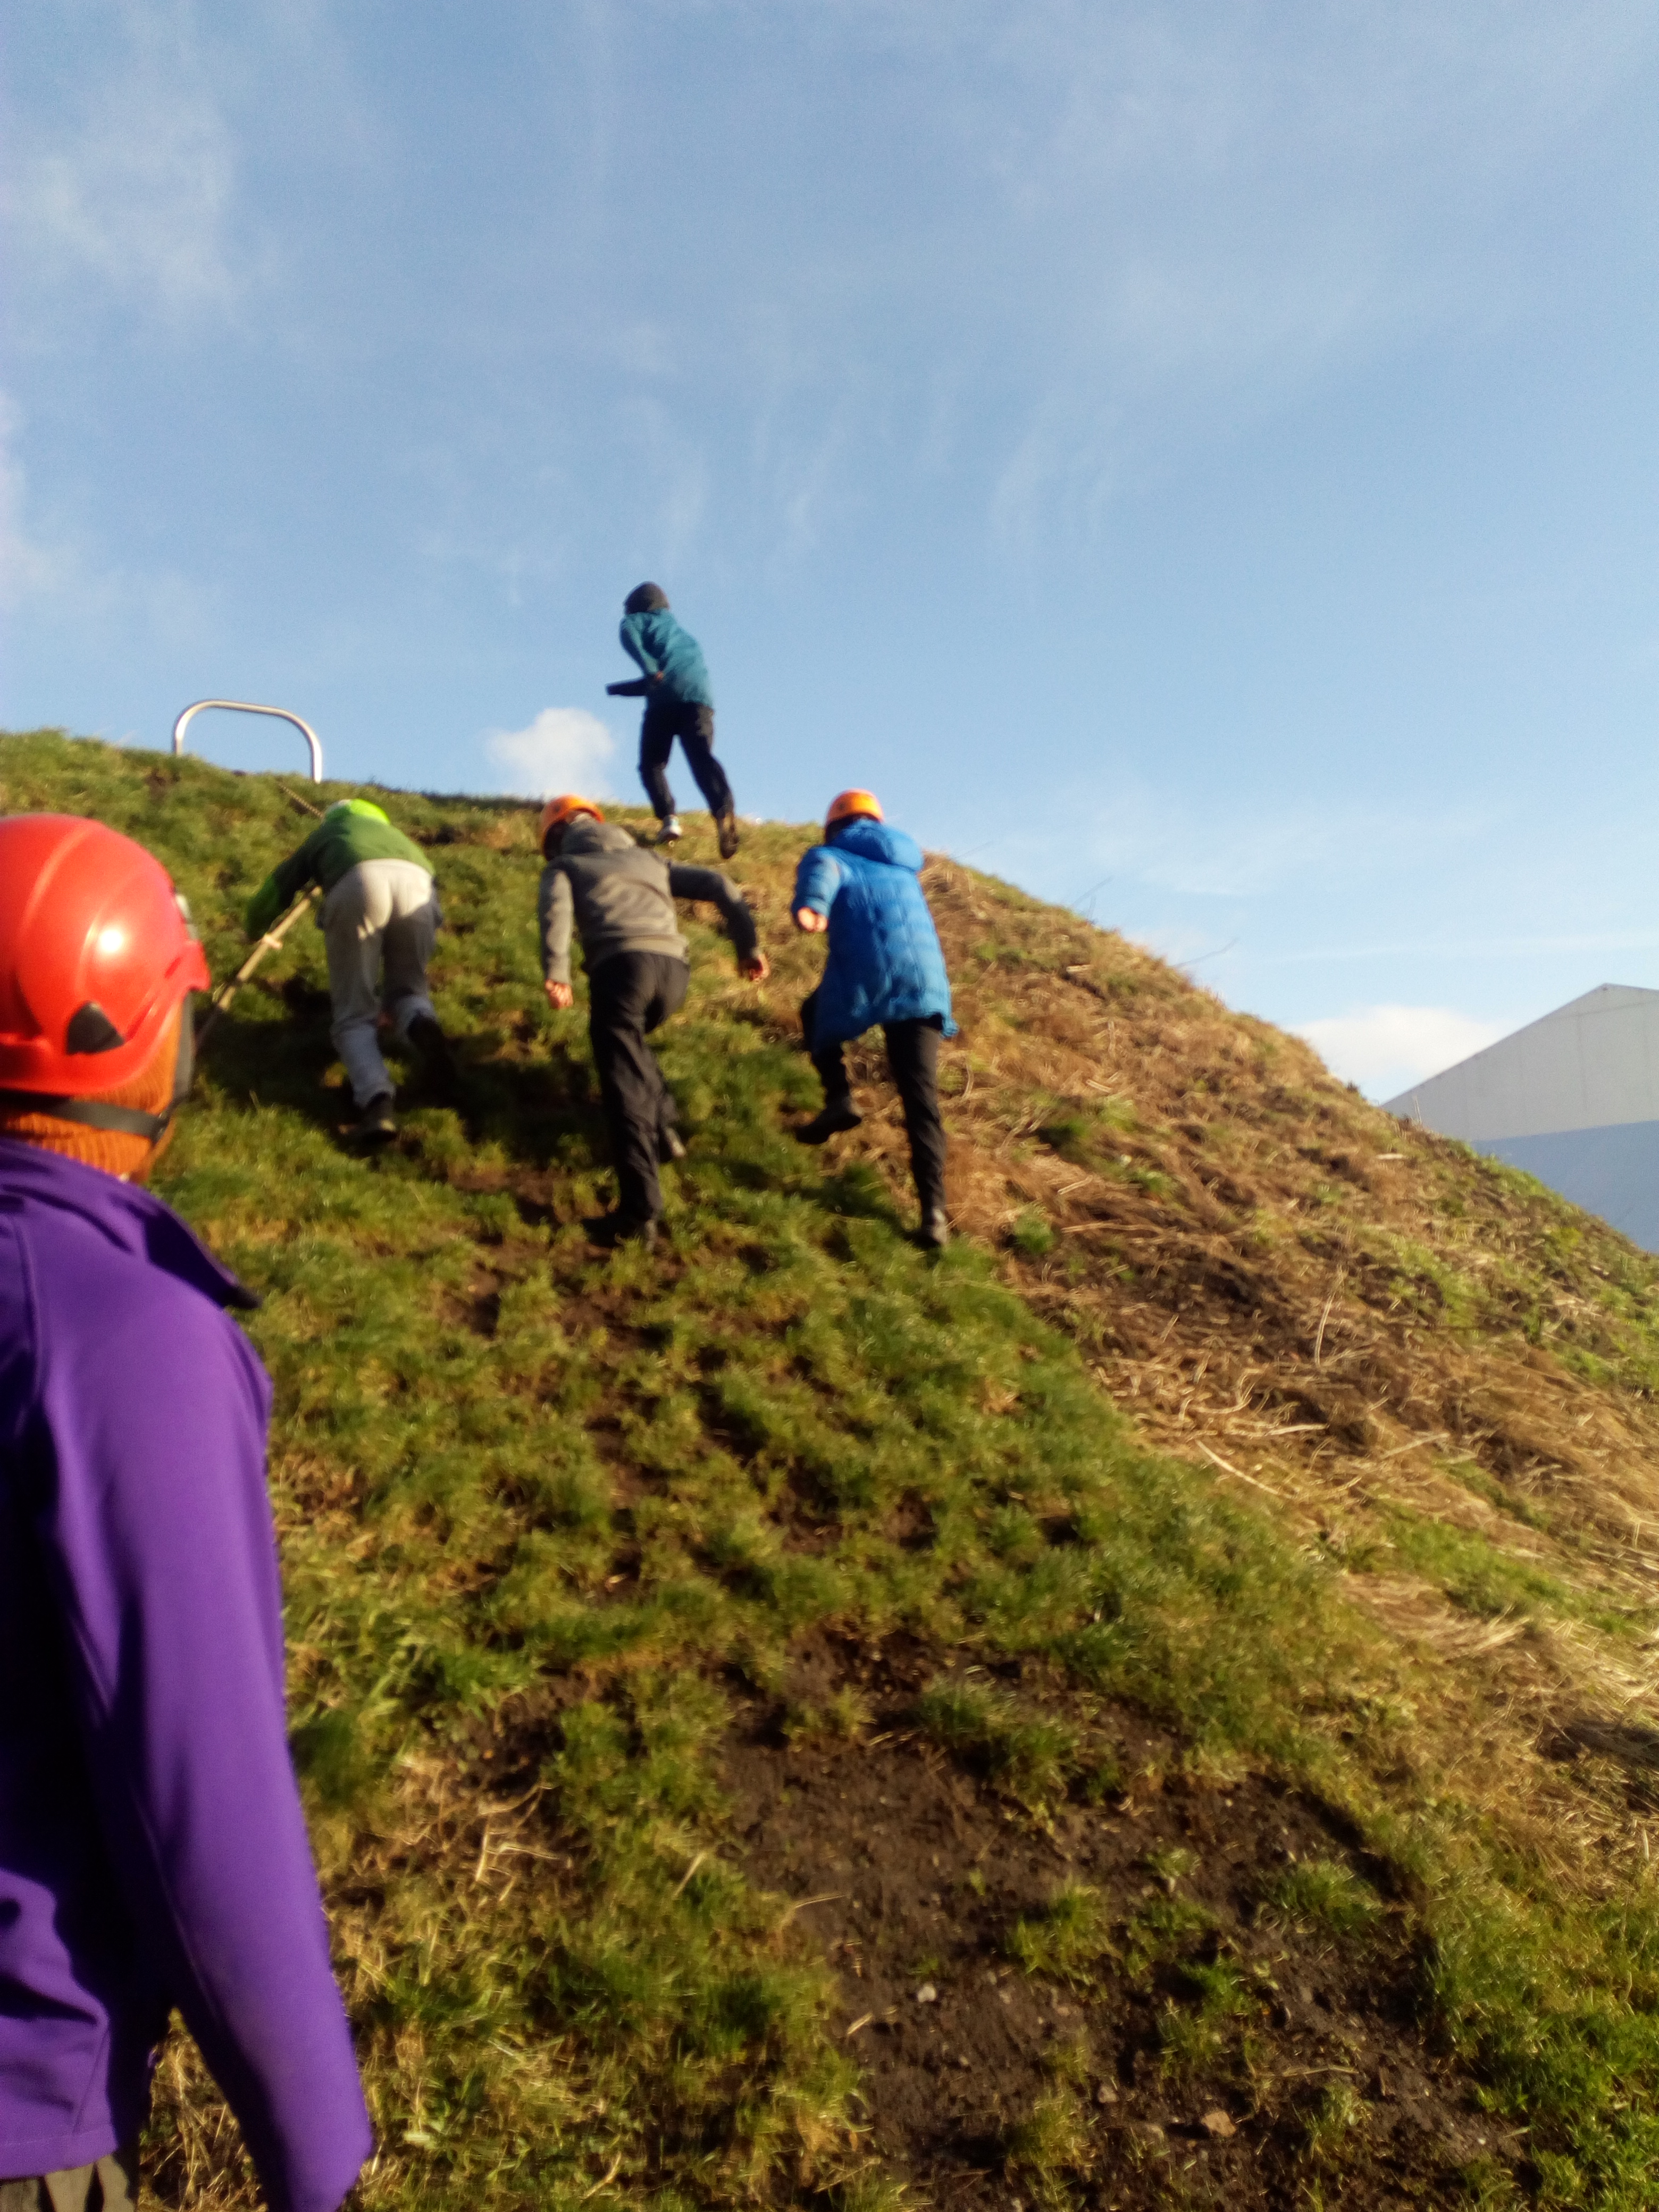 Beating the hill at the challenging obst